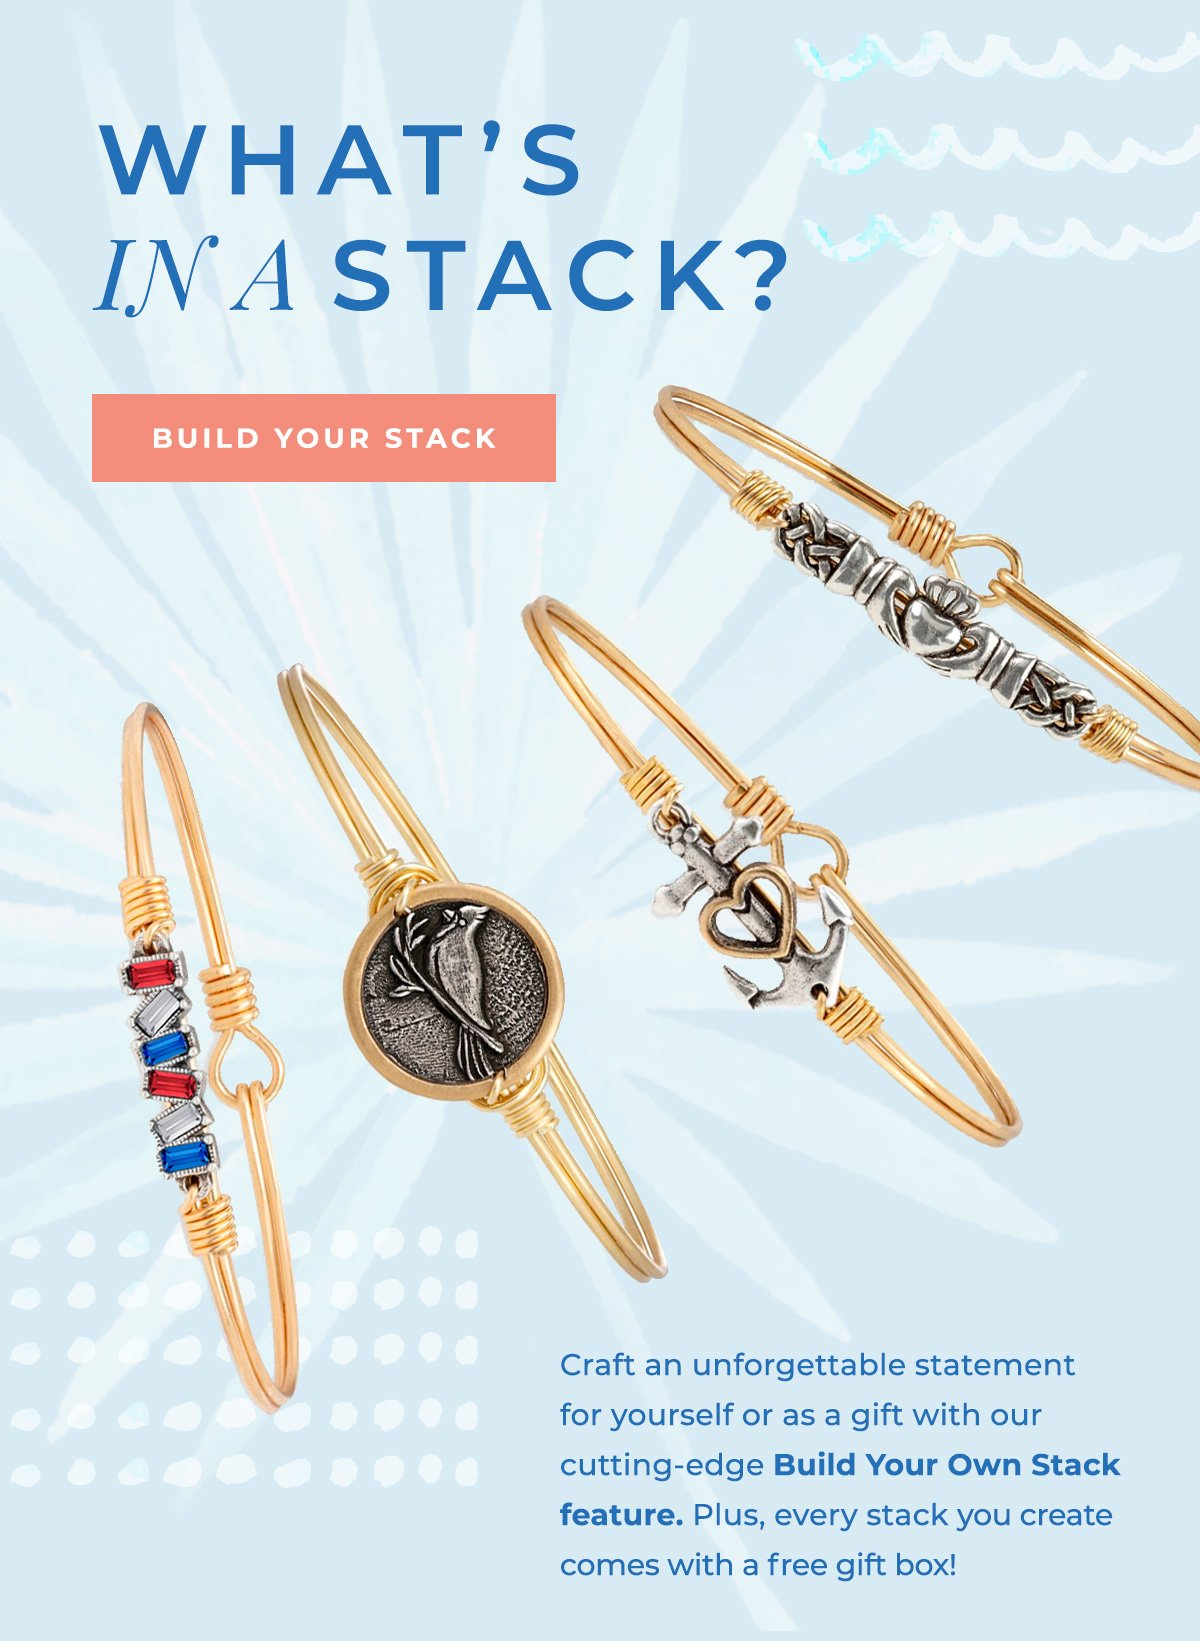 WHAT'S IN A STACK?   BUILD YOUR STACK   Craft an unforgettable statement for yourself or as a gift with our cutting-edge Build Your Own Stack feature. Plus, every stack you create comes with a free gift box!